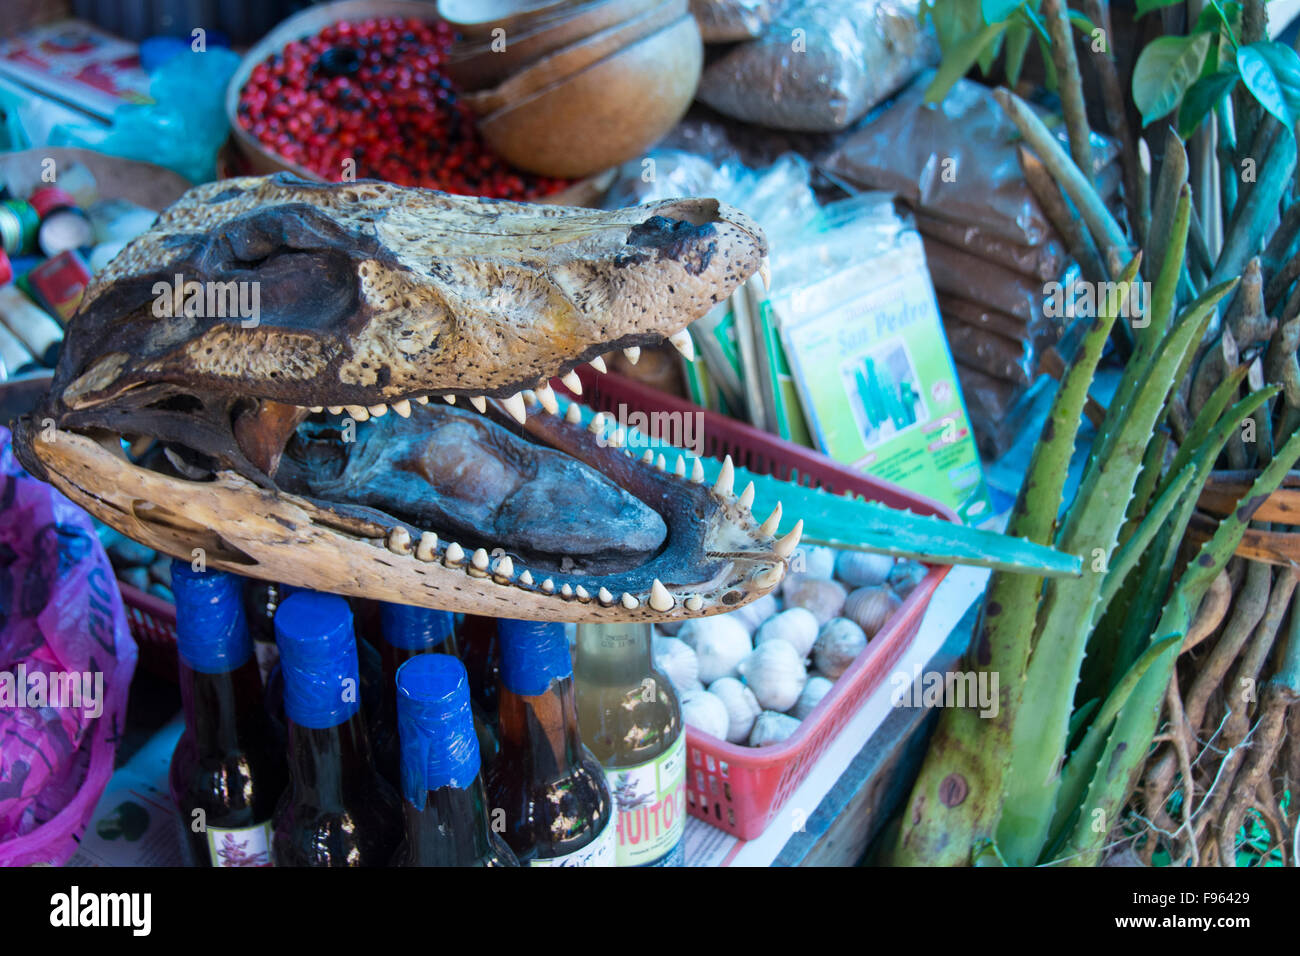 Market scenes, Iquitos, the largest city in the Peruvian rainforest and the fifthlargest city of Peru - Stock Image